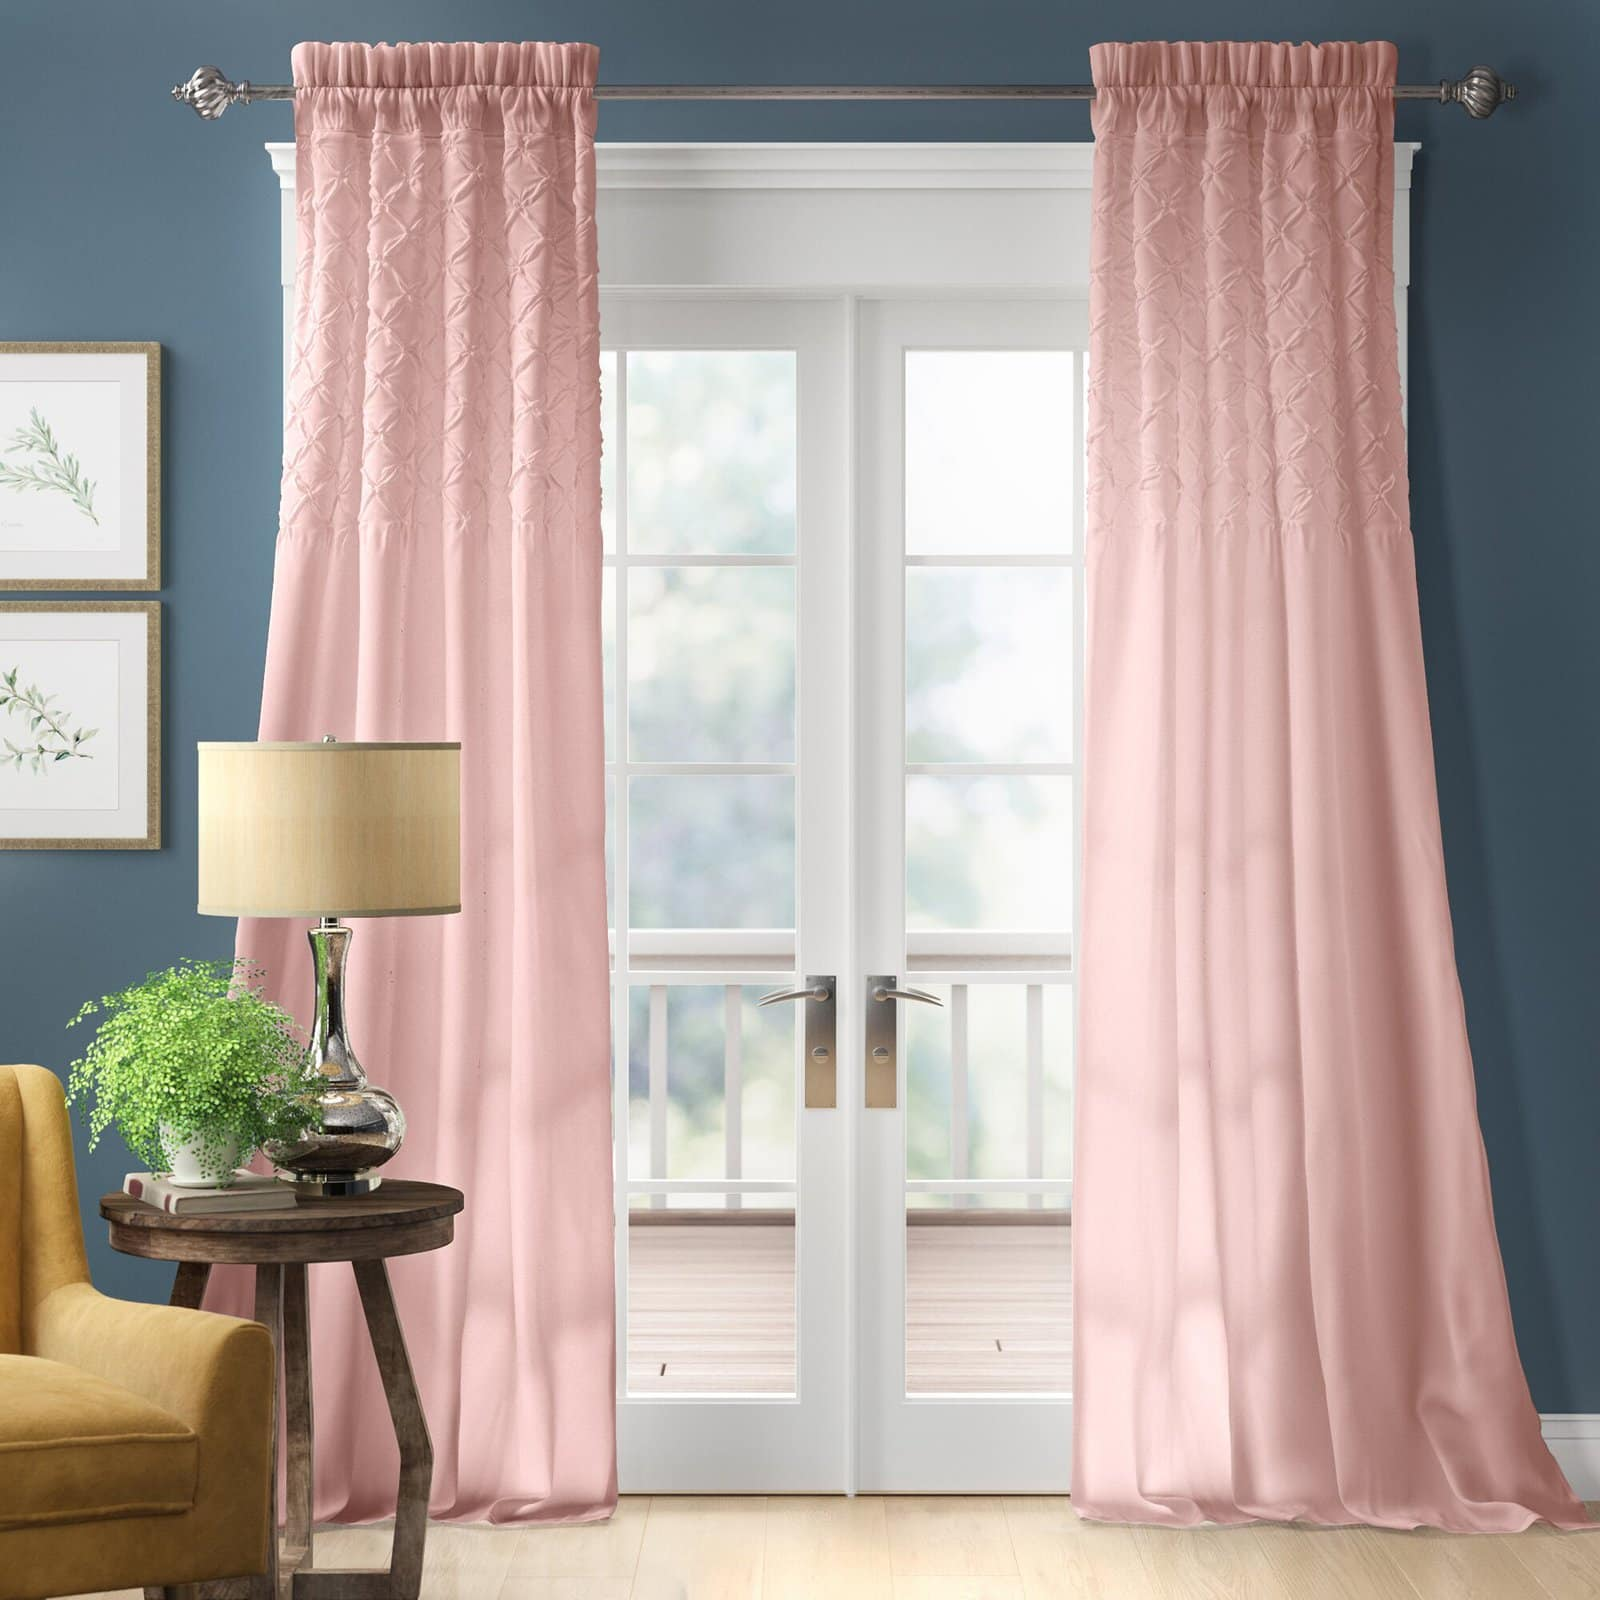 Blush Pink Curtains with Deep Blue Walls